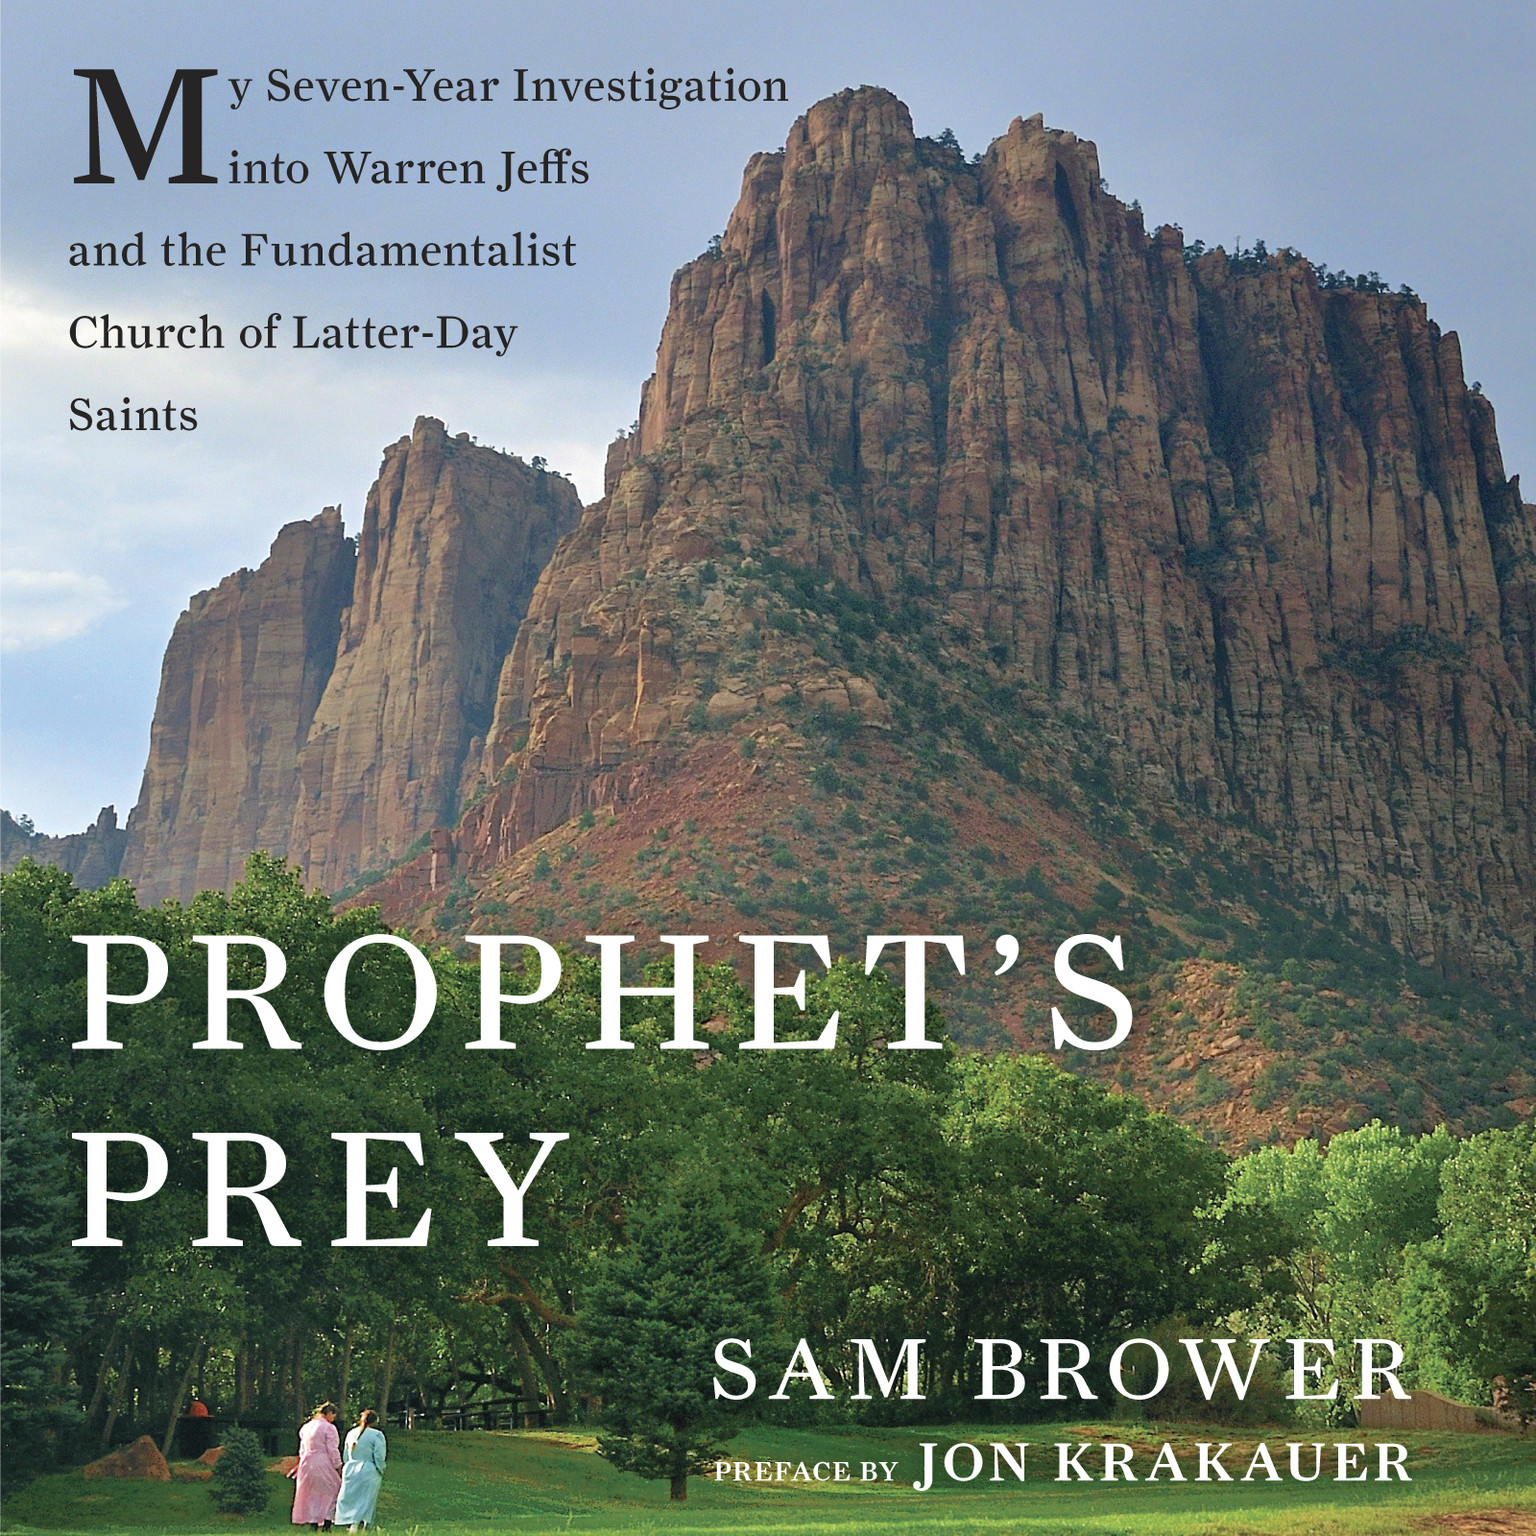 Printable Prophet's Prey: My Seven-Year Investigation into Warren Jeffs and the Fundamentalist Church of Latter-Day Saints Audiobook Cover Art